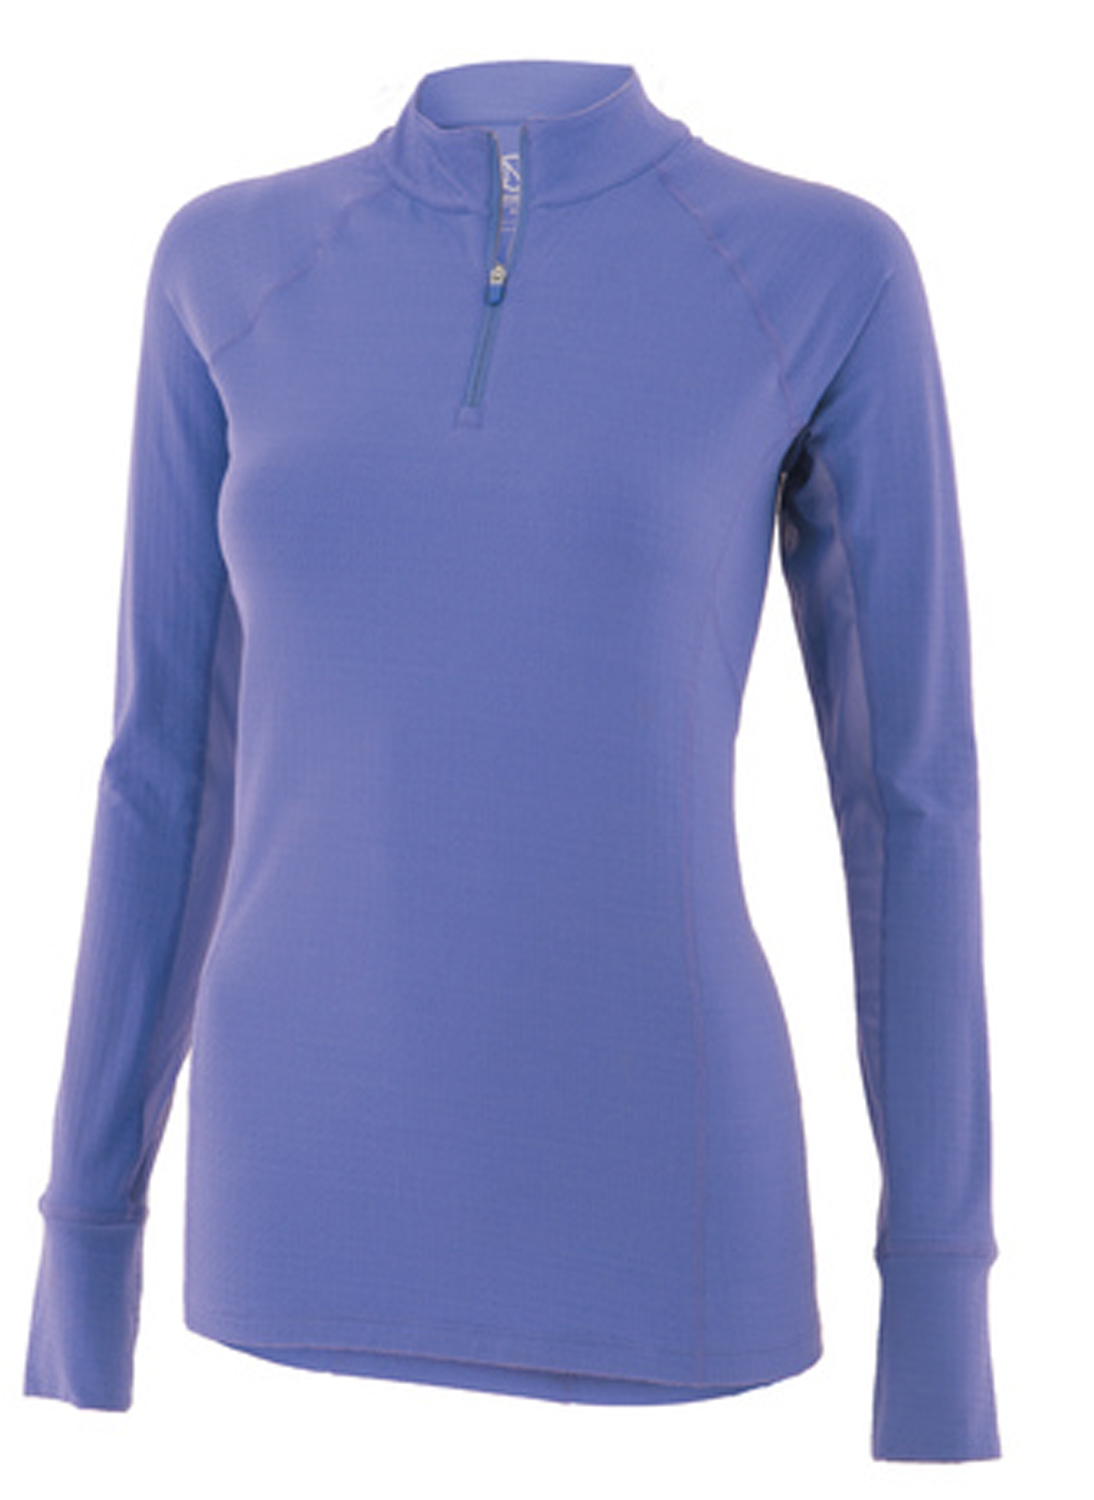 Noble Ashley Periwinkle Performance Shirt Fast And Free